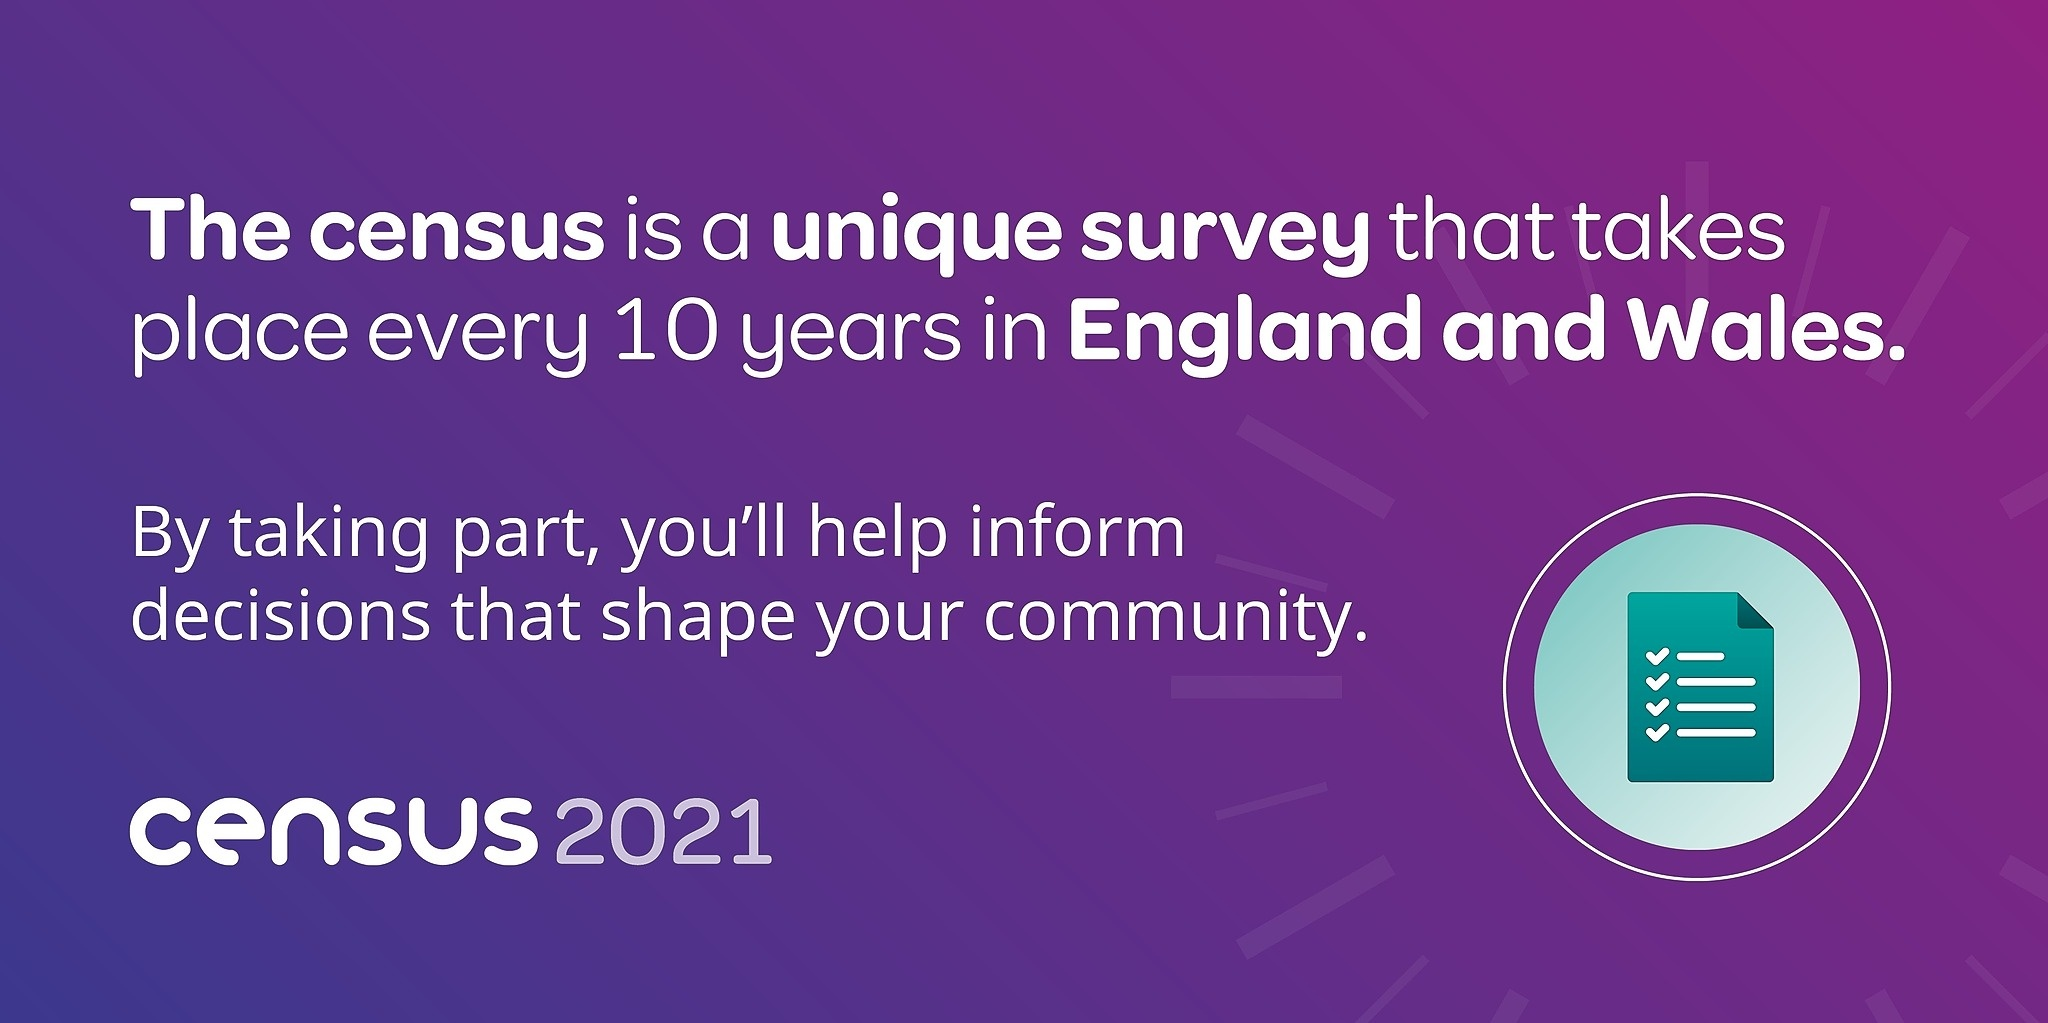 Census banner - the census is a unique survey that takes place every 10 years in England and Wales